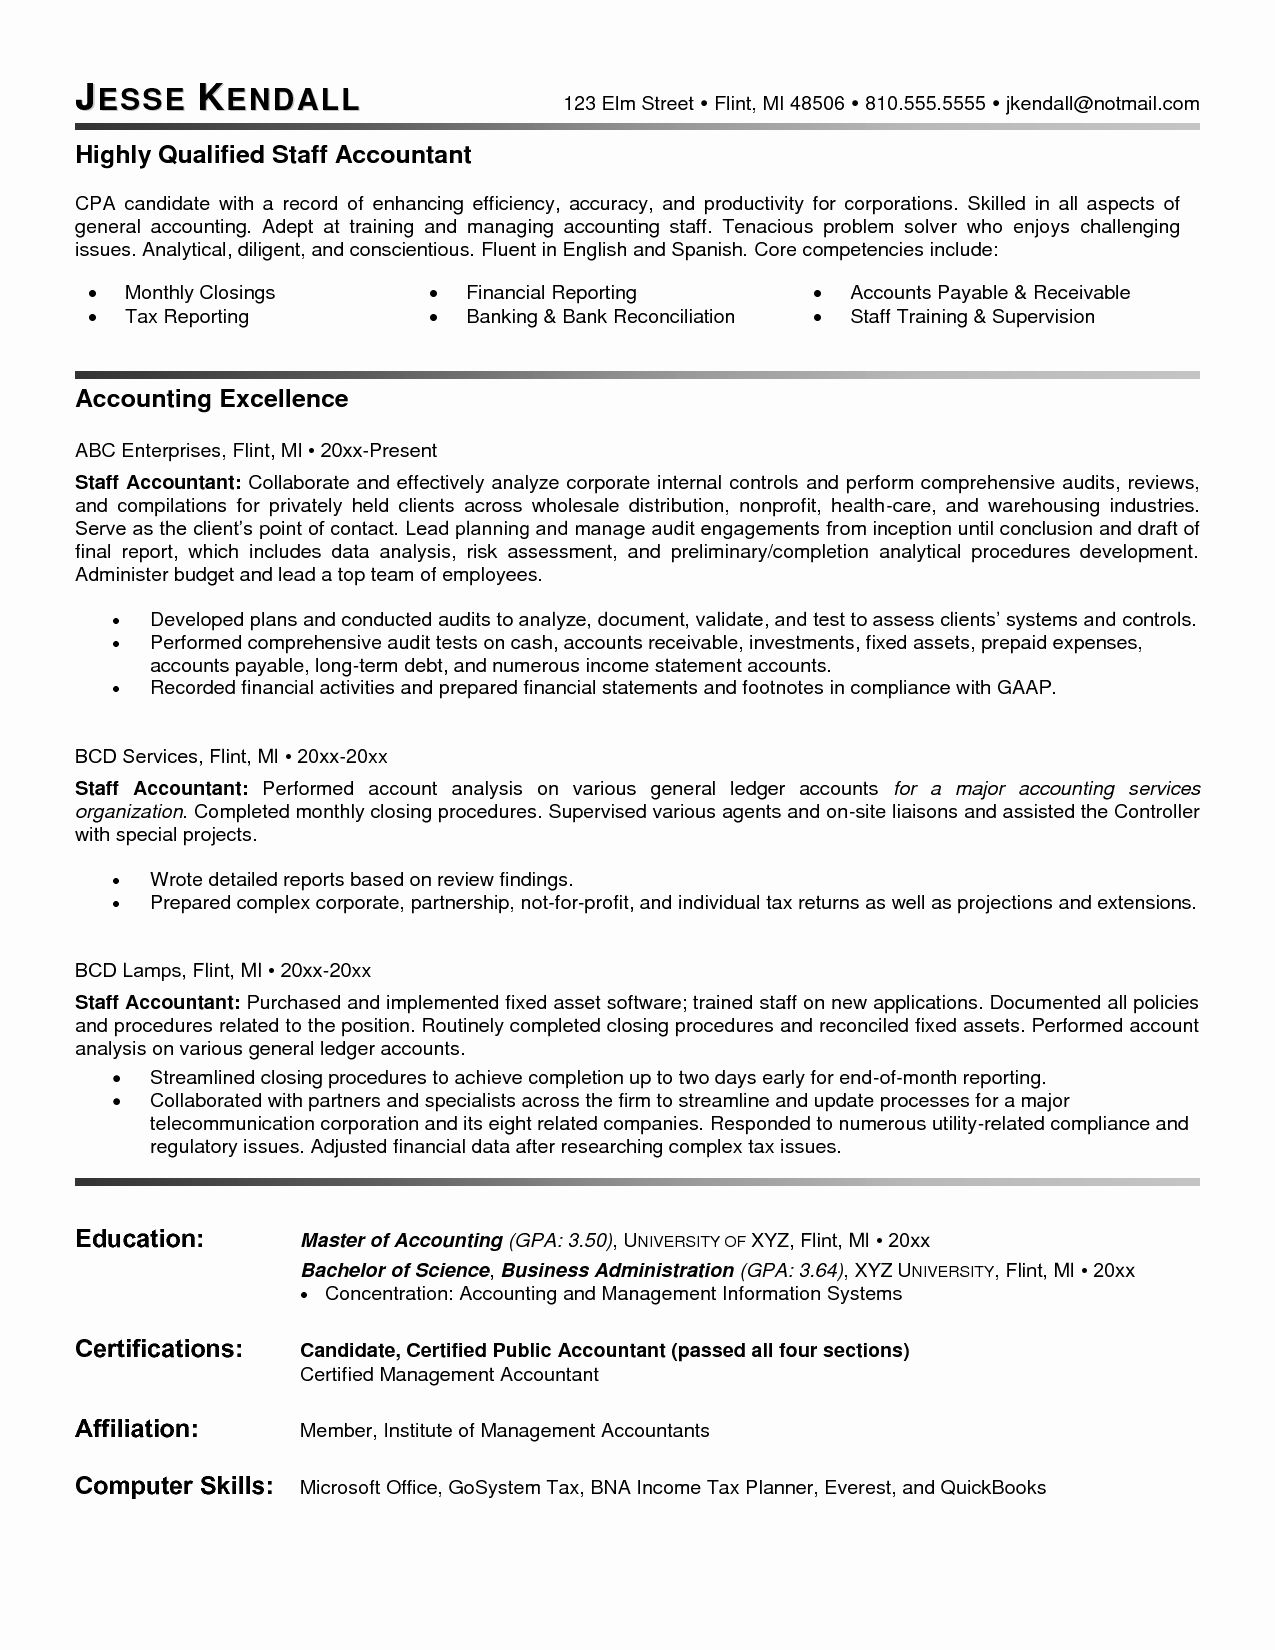 Fixed Assets Manager Sample Resume Cv Sle Computer Skills Image Collections  Animes  Pinterest .